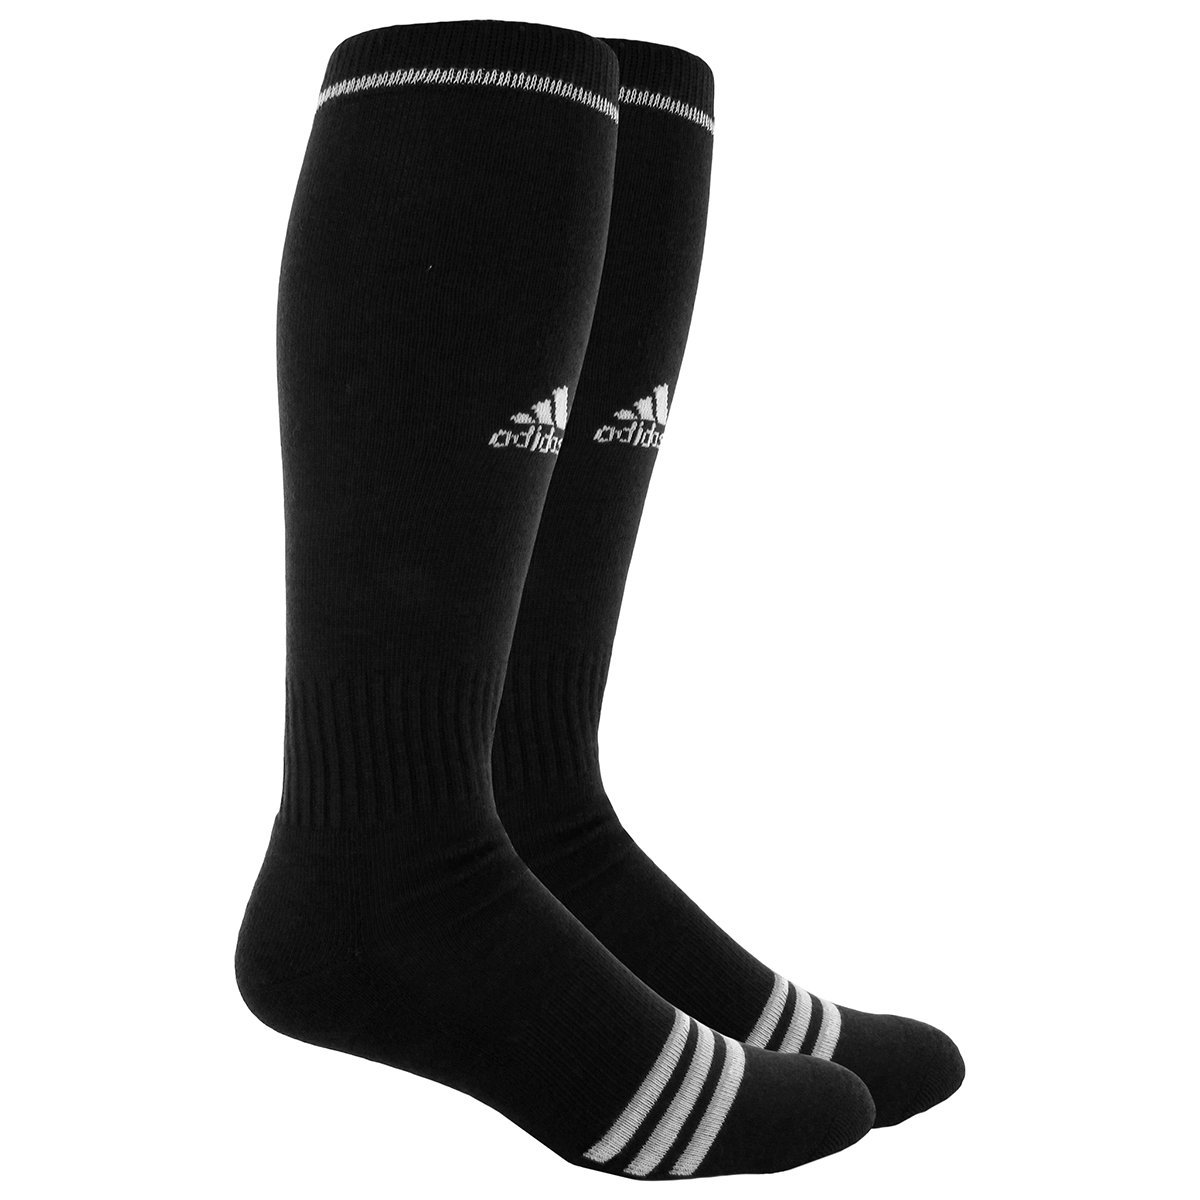 What Kind Of Socks To Wear For Running Shoes